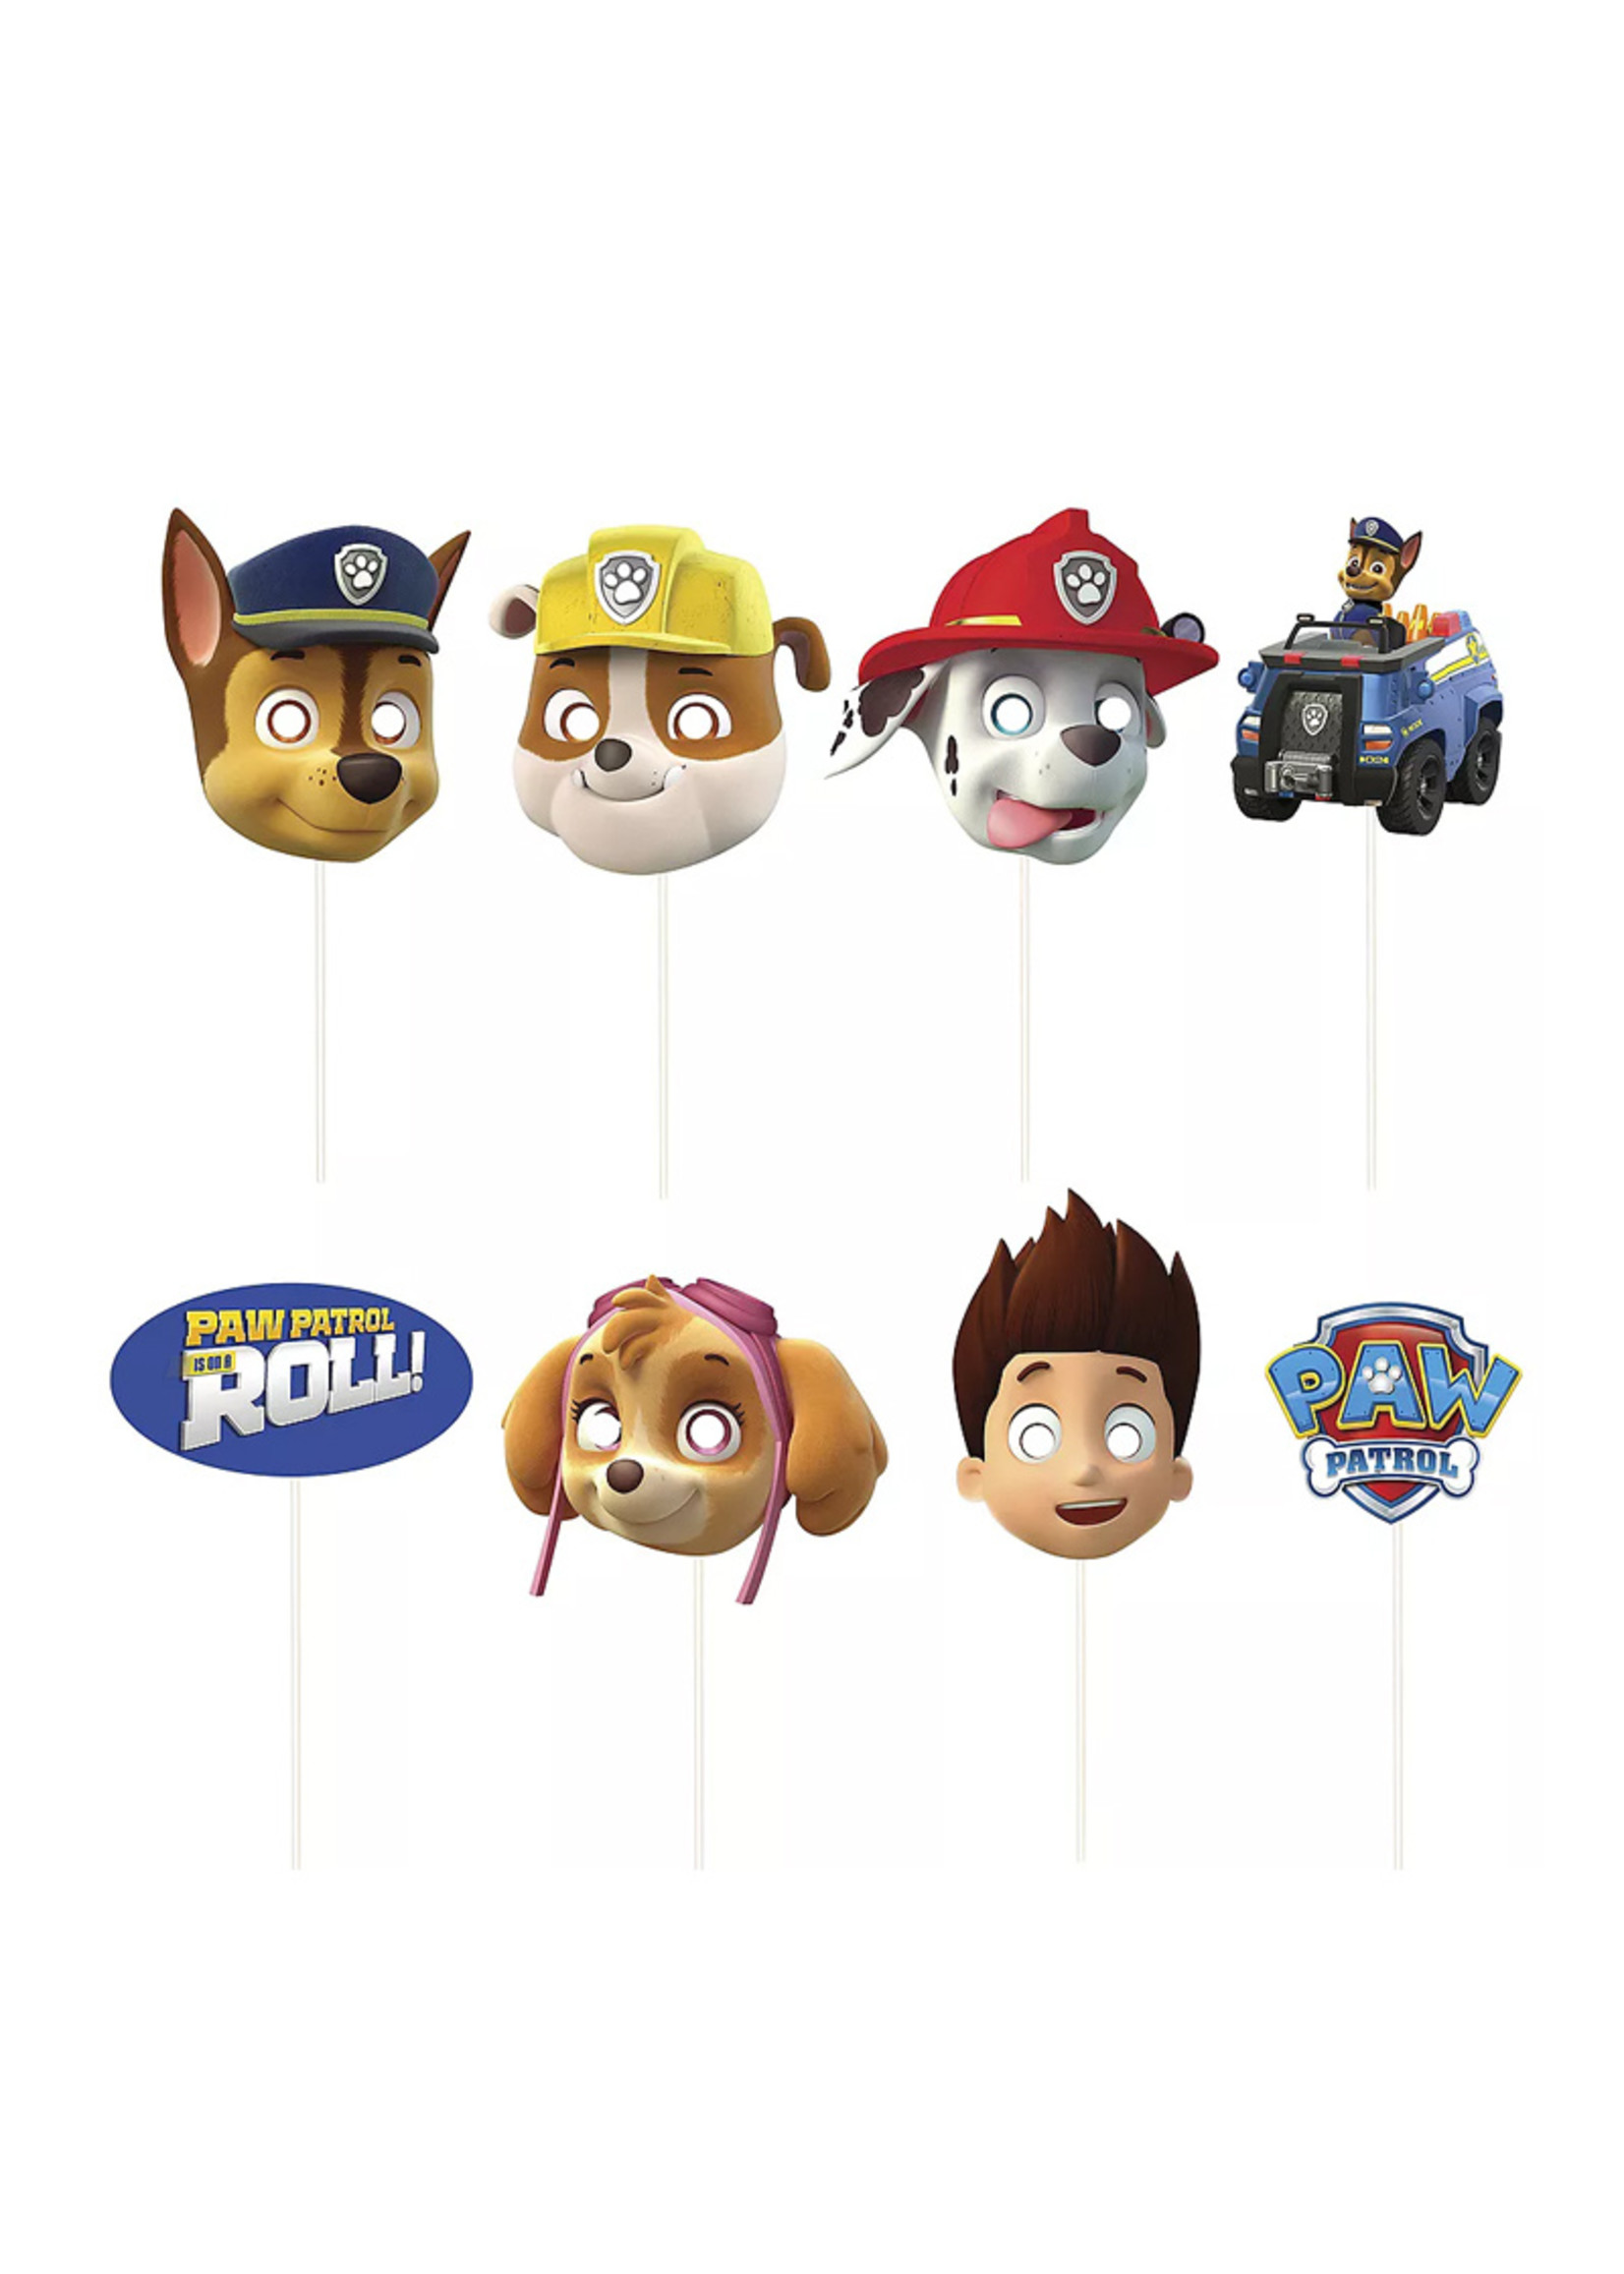 PAW Patrol Scene Setter with Photo Booth Props